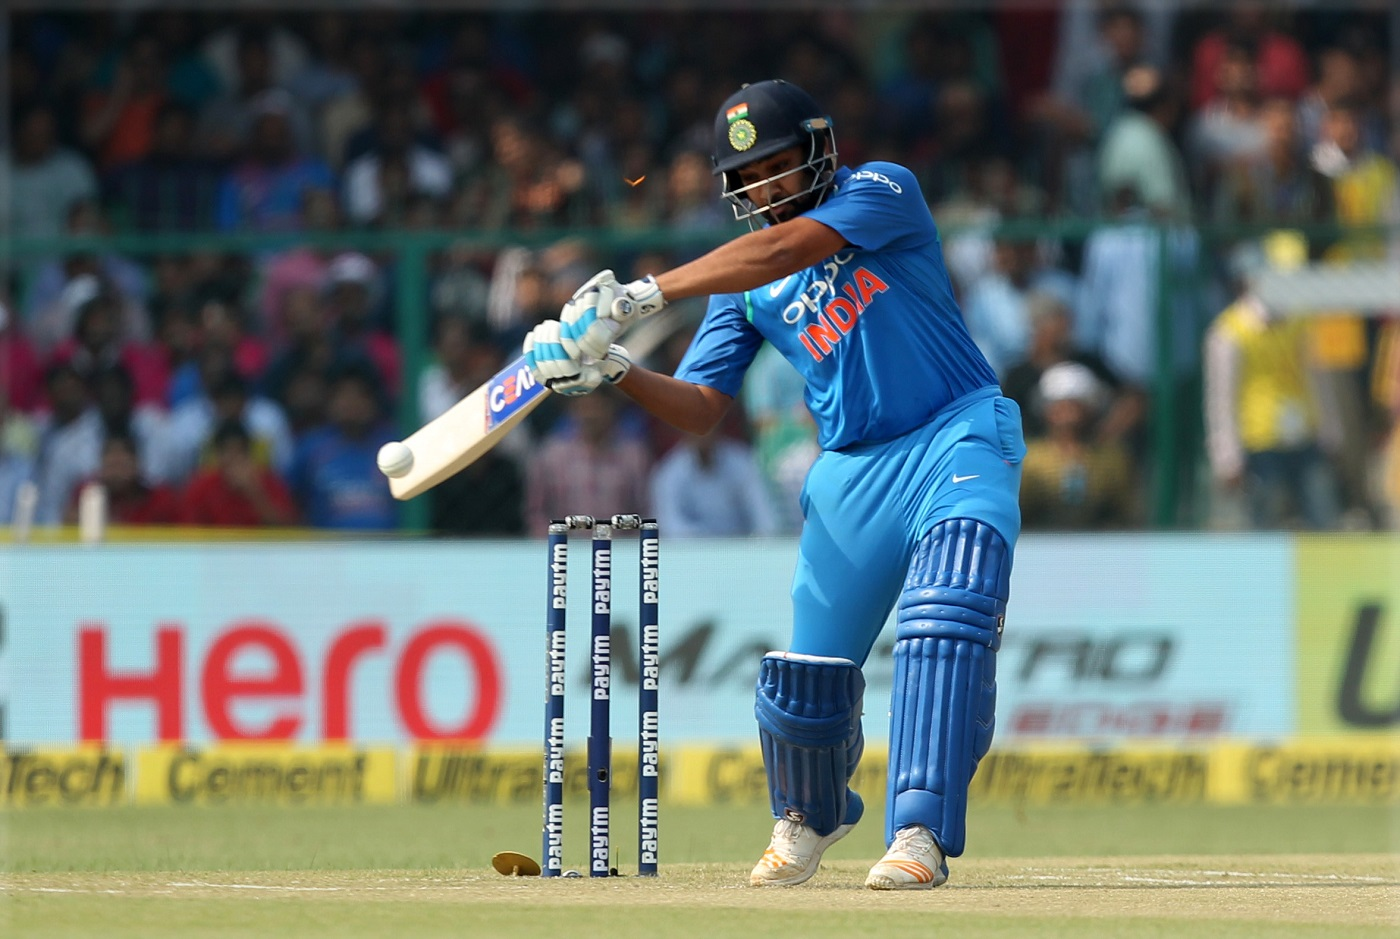 India wins Nail biting series decider and clinches the series right at the death